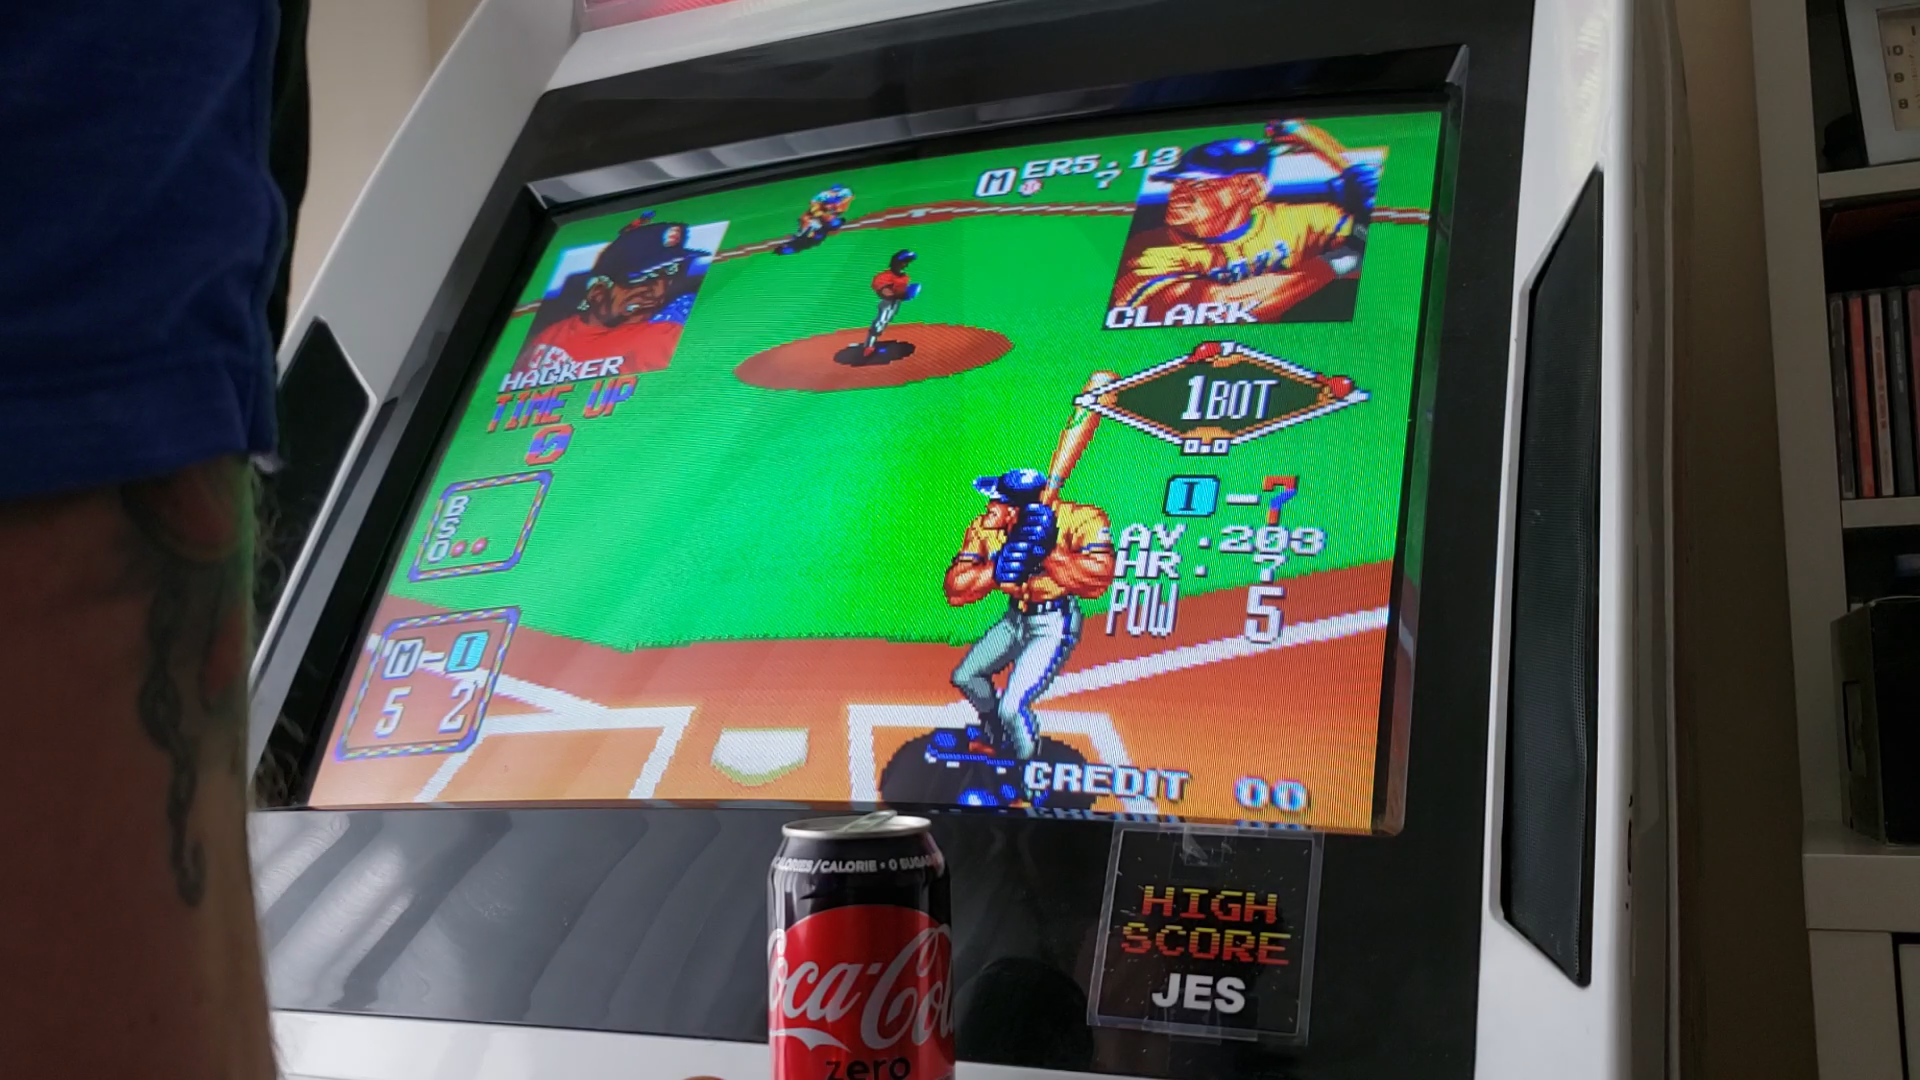 JES: Baseball Stars 2 [bstars2] (Arcade Emulated / M.A.M.E.) 5 points on 2020-03-25 13:15:33